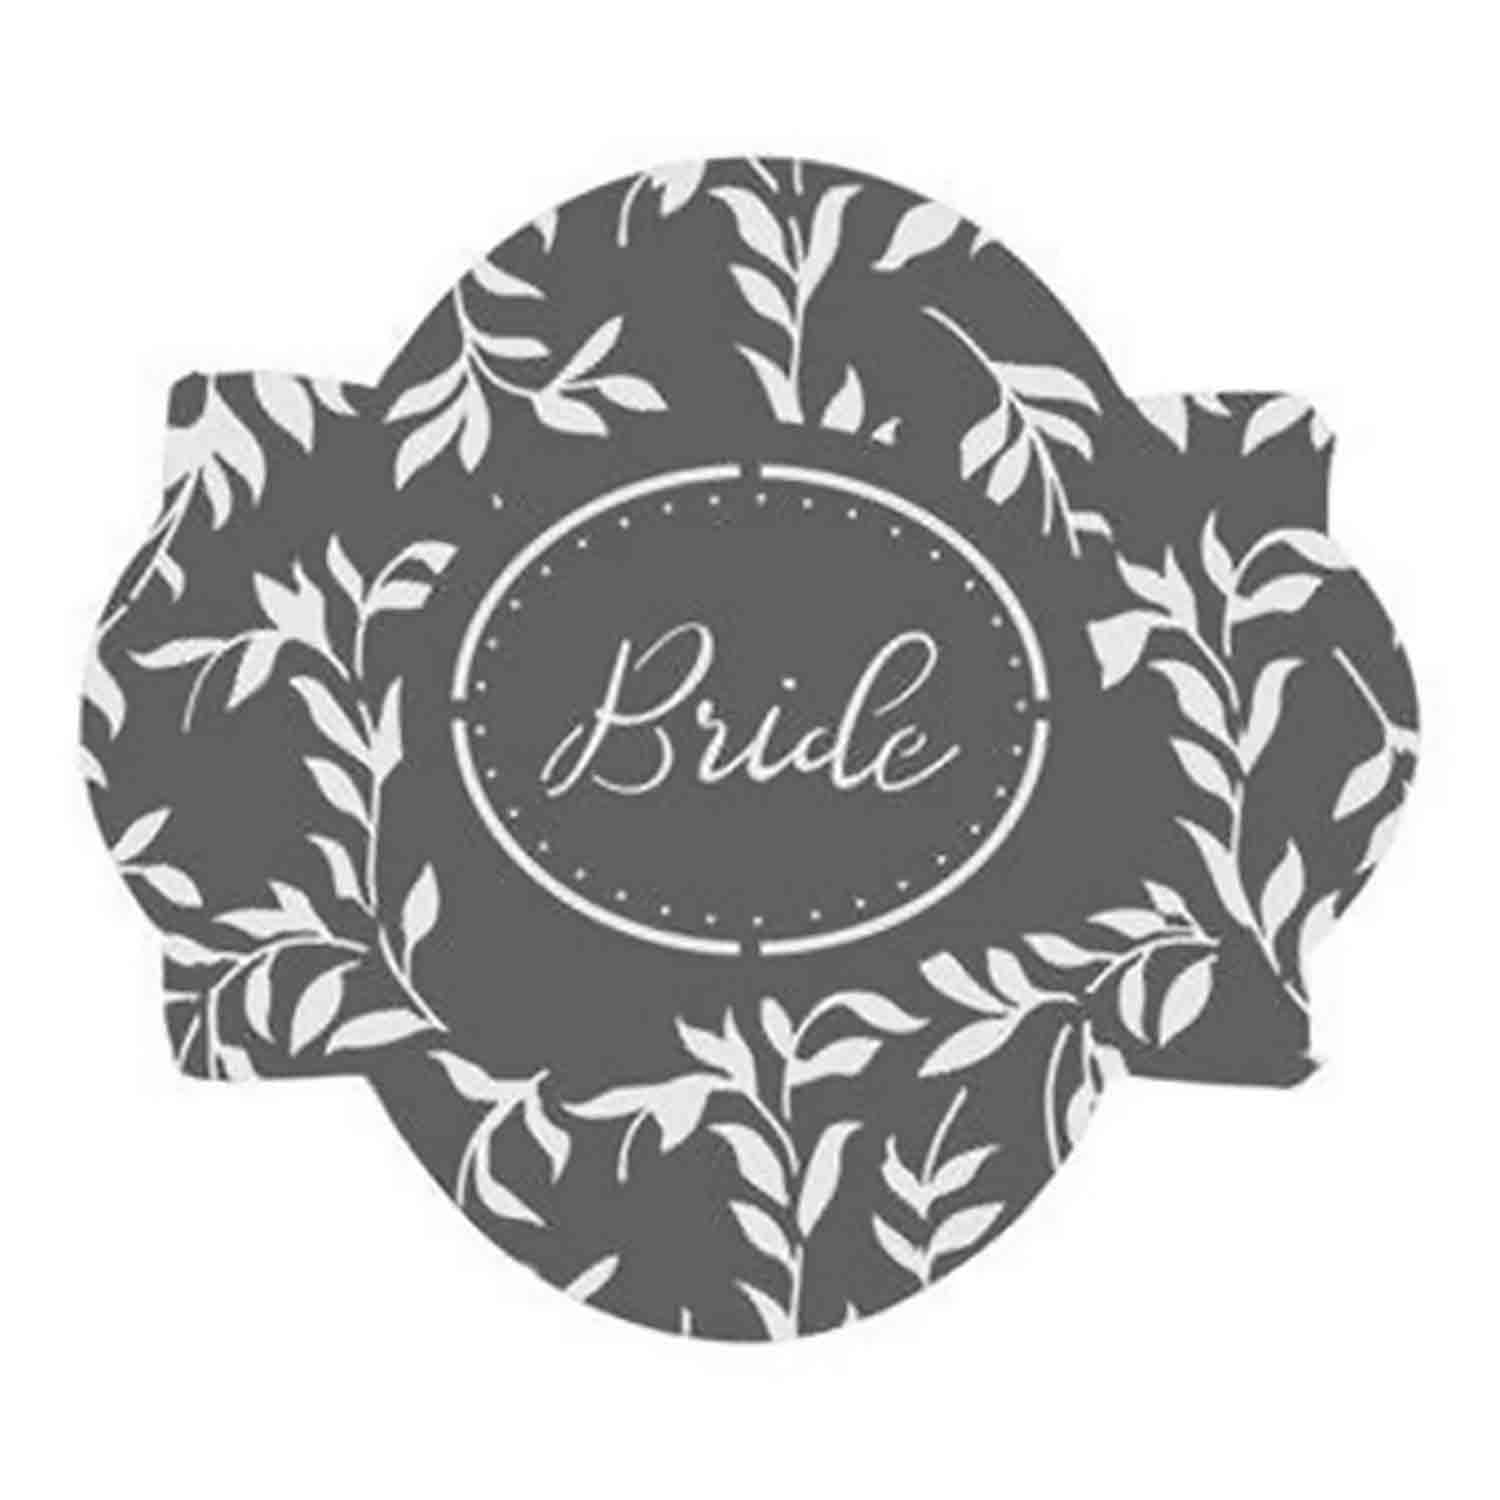 Bride Cookie Stencil Set by Julia M Usher